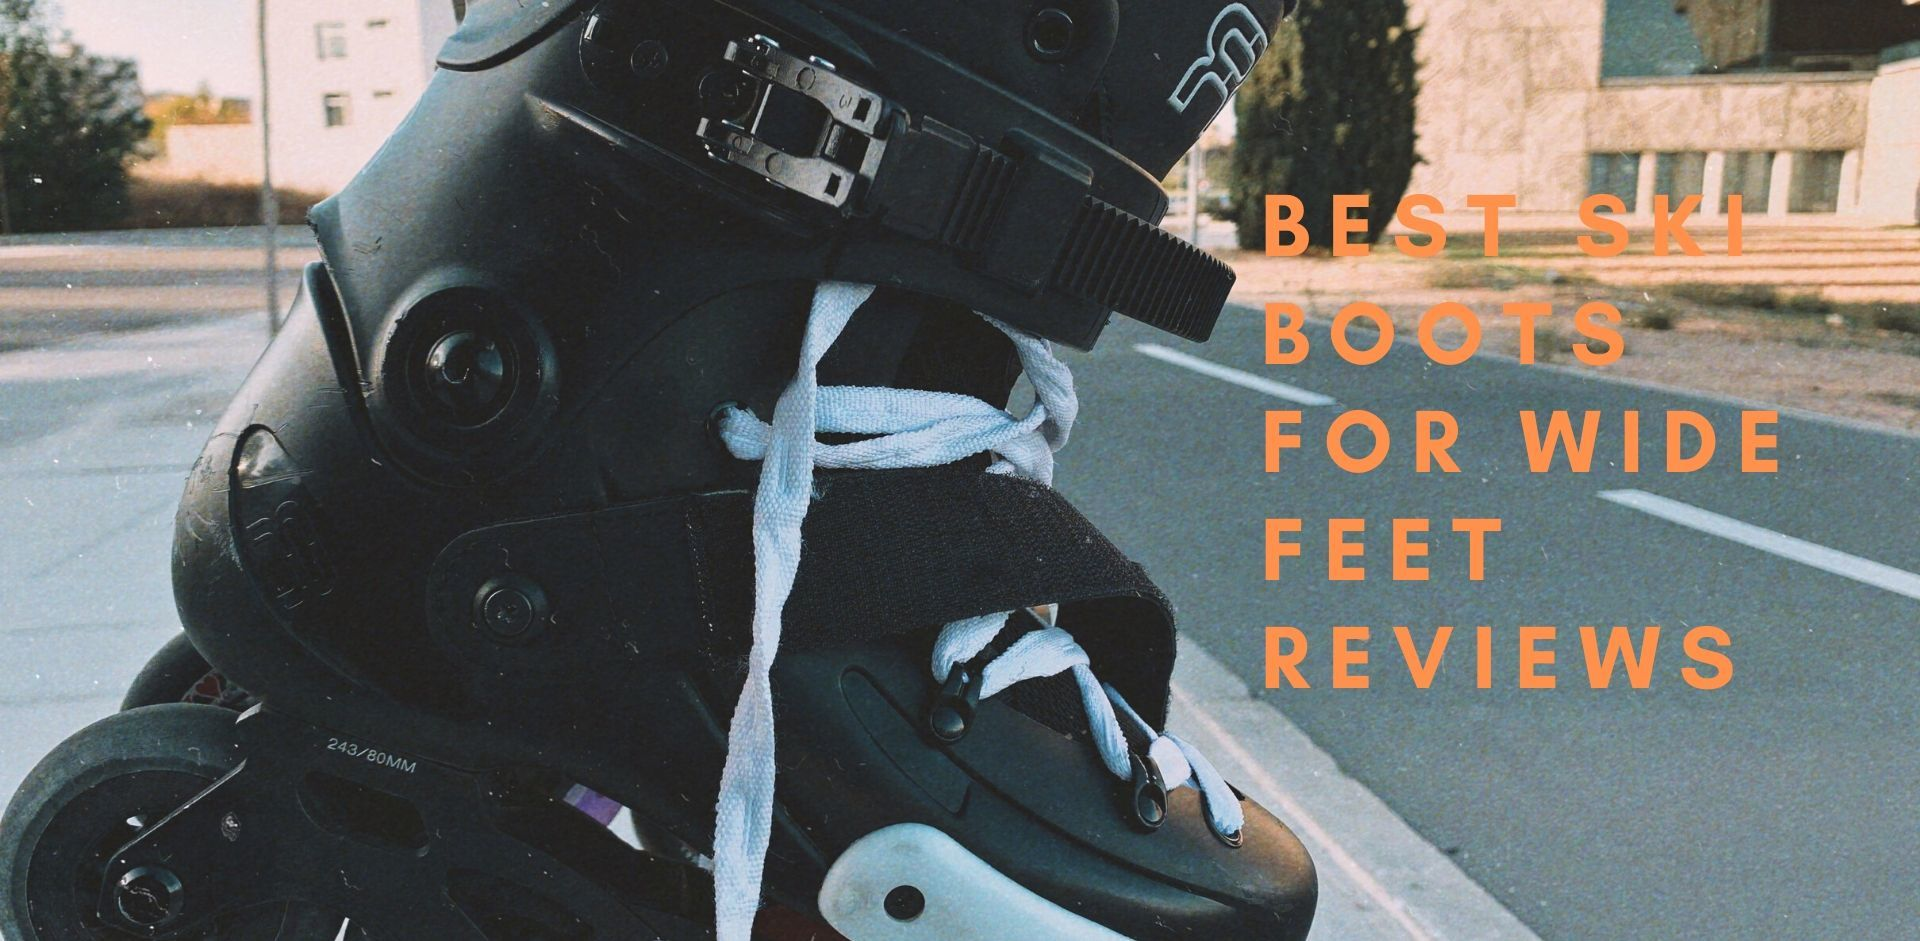 ski boots for wide feet reviews